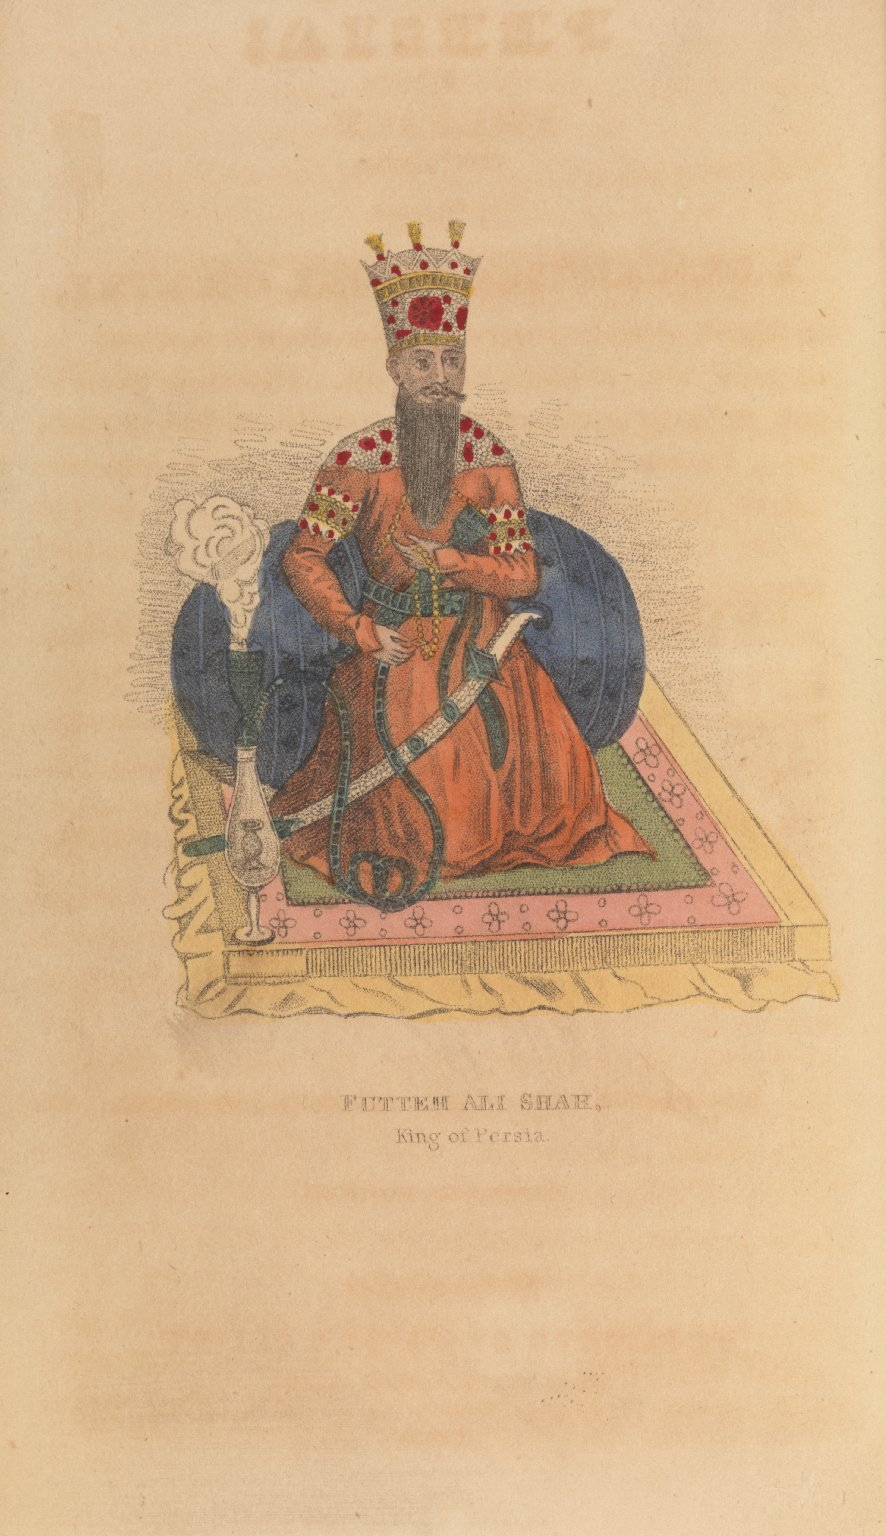 Futteh Ali Shah: King of Persia